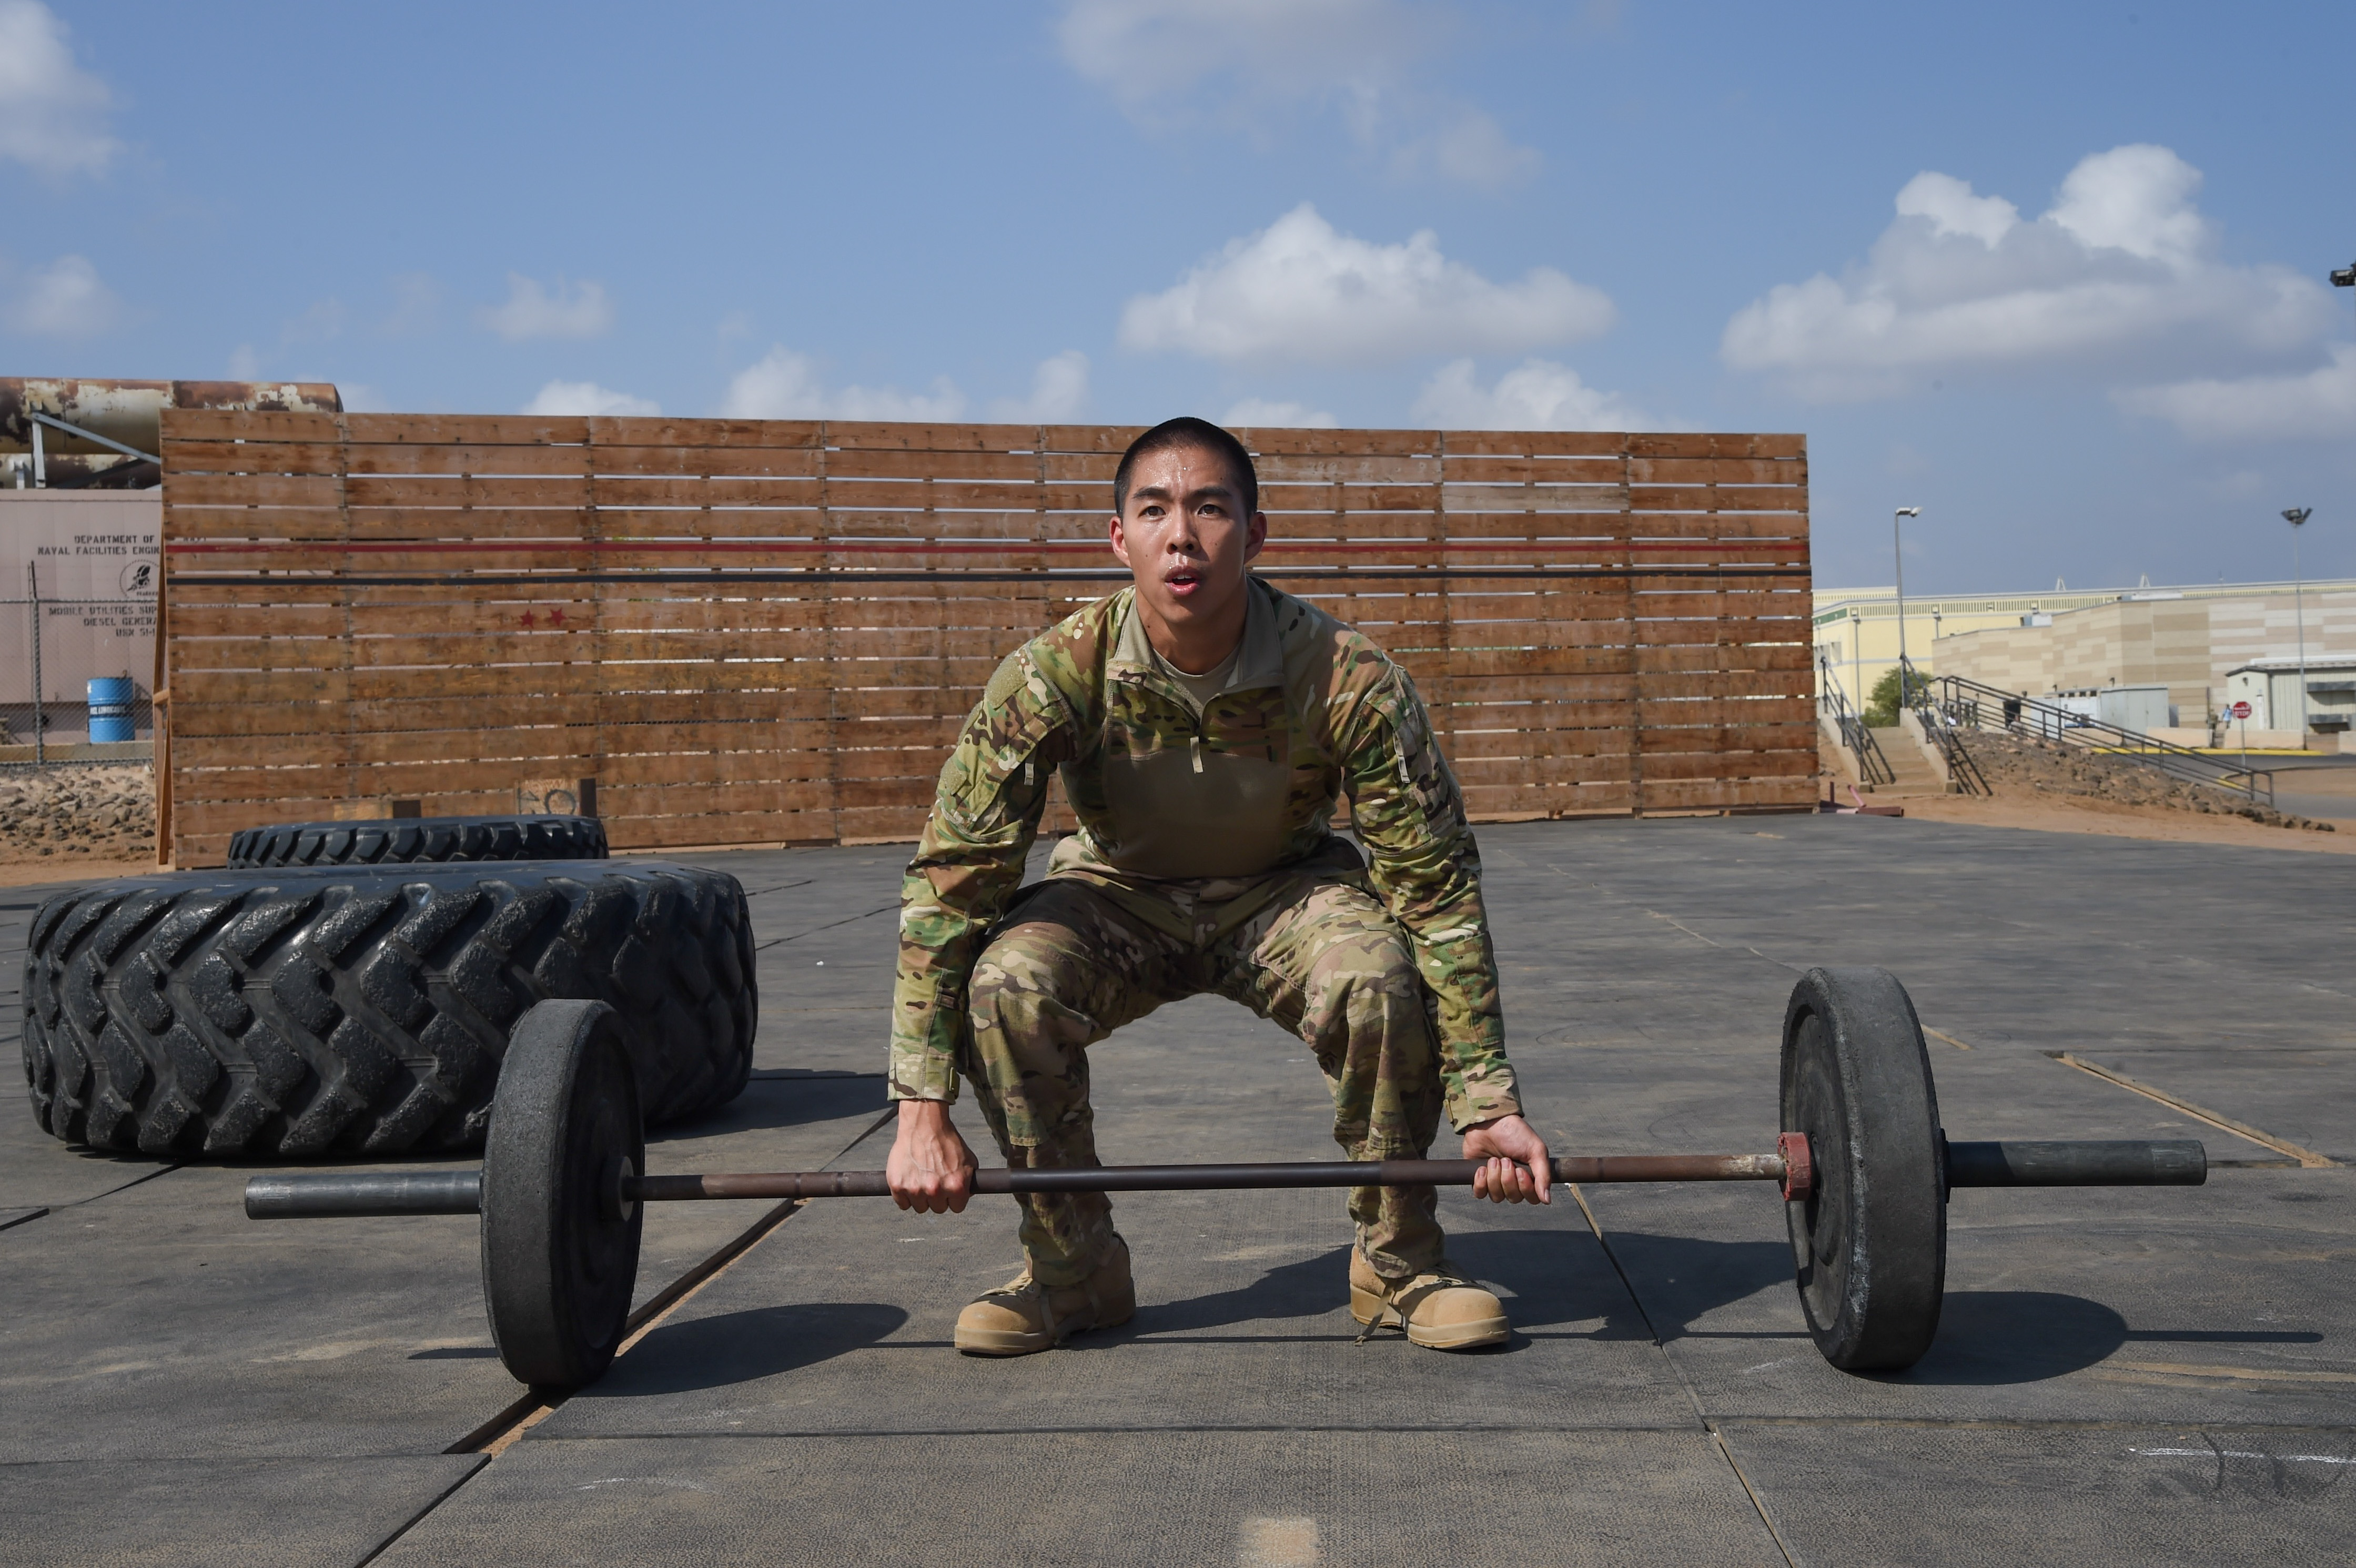 U.S. Air Force Cpt. Alexander Leong, Combined Joint Task Force-Horn of Africa personnel specialist, prepares for fifteen repetitions of a 135-pound deadlift during the Joint Warrior Competition, Nov. 19, 2016, Camp Lemonnier, Djibouti. After the joint physical fitness test, participants started the joint combat fitness test. The combat test was comprised of a low crawl, tourniquet application, buddy carry, radio medical evacuation, grenade toss, tire flip, ammo can carry, dead lift, and rope climb. (U.S. Air National Guard photo by Staff Sgt. Penny Snoozy)